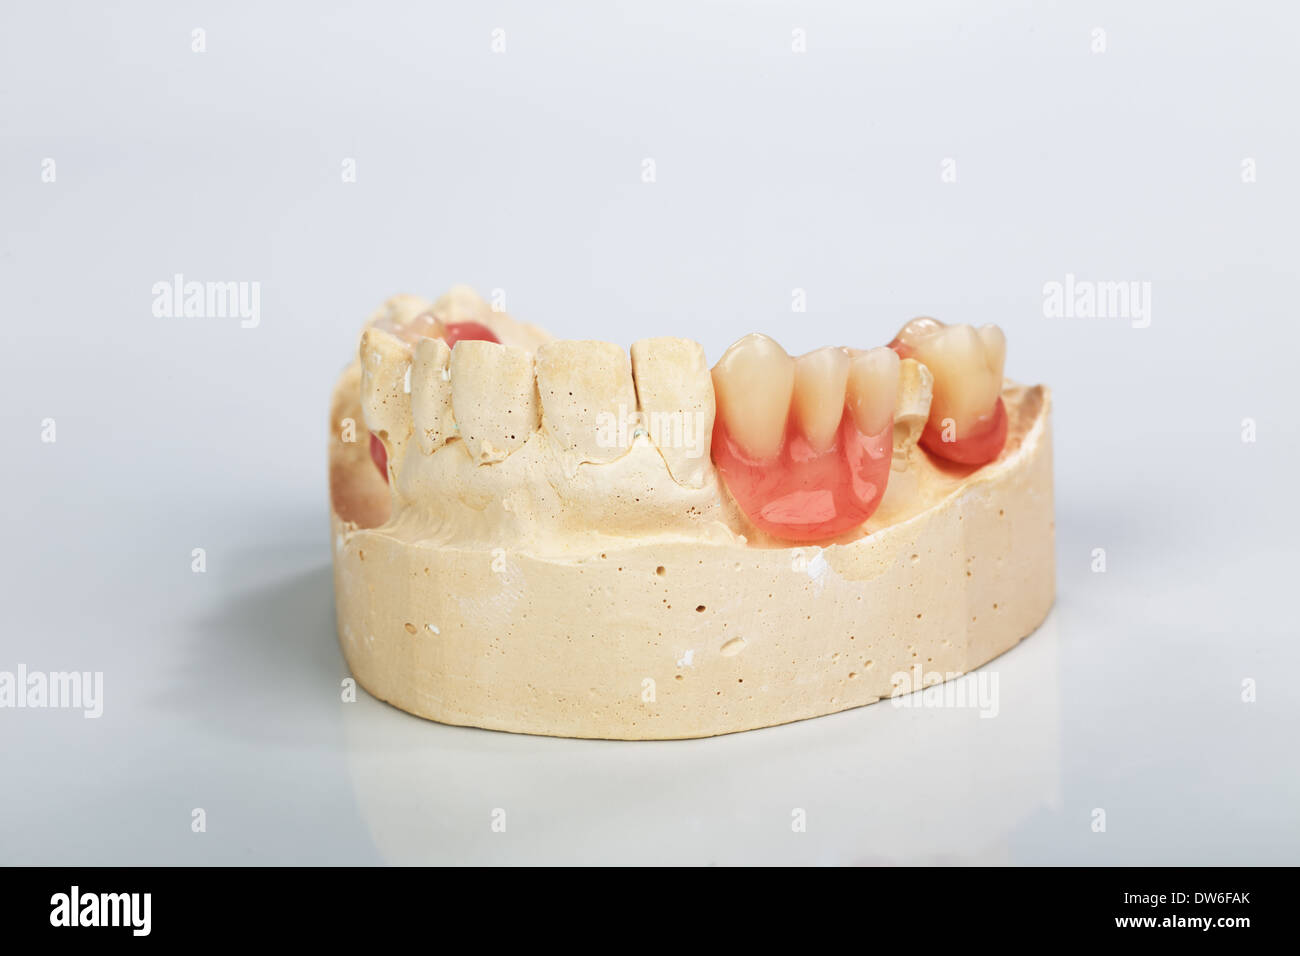 hight resolution of a partial denture mounted on a plaster study model and placed on a shiny gray background